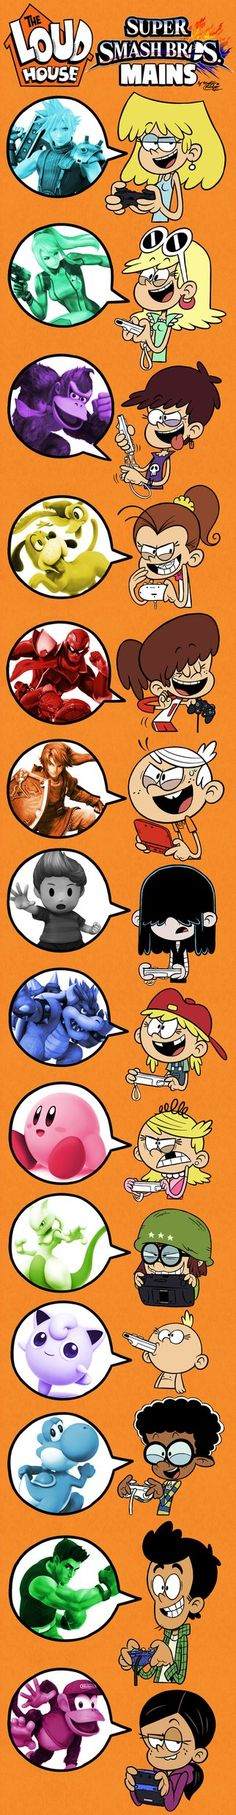 THE LOUD HOUSE and their SMASH BROS. Mains! by Master-Rainbow.deviantart.com on @DeviantArt